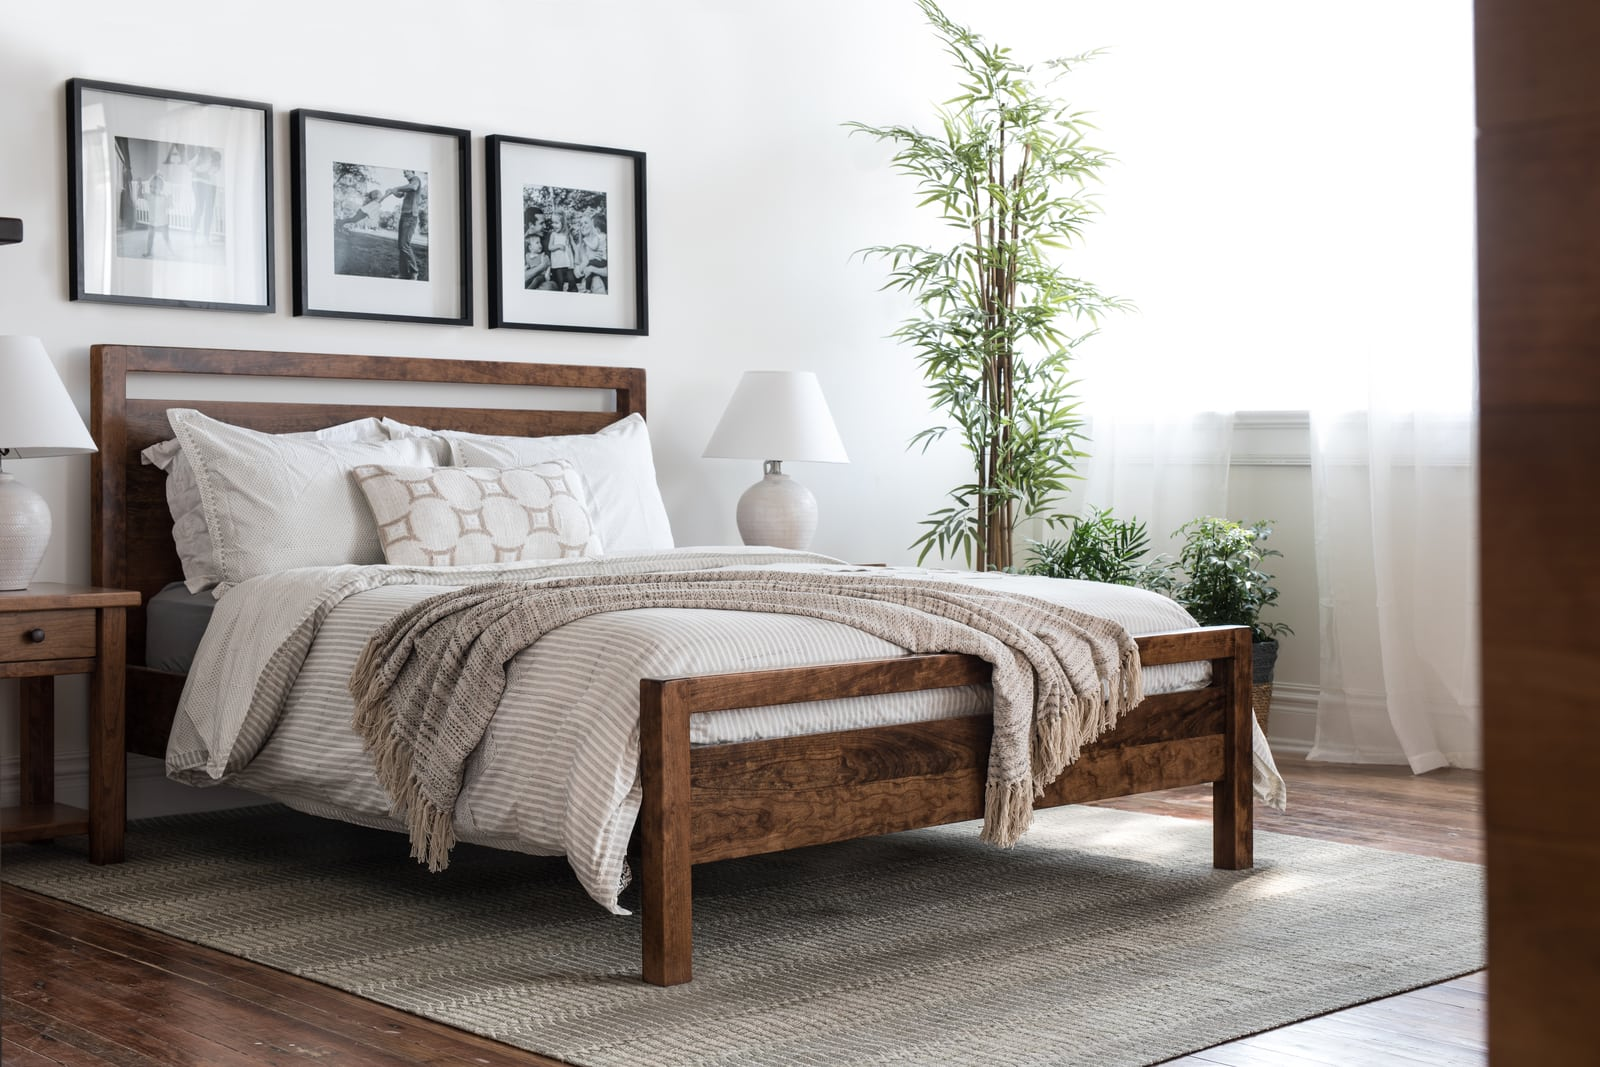 The Denton Bed by Unruh in a Dallas craftsman home